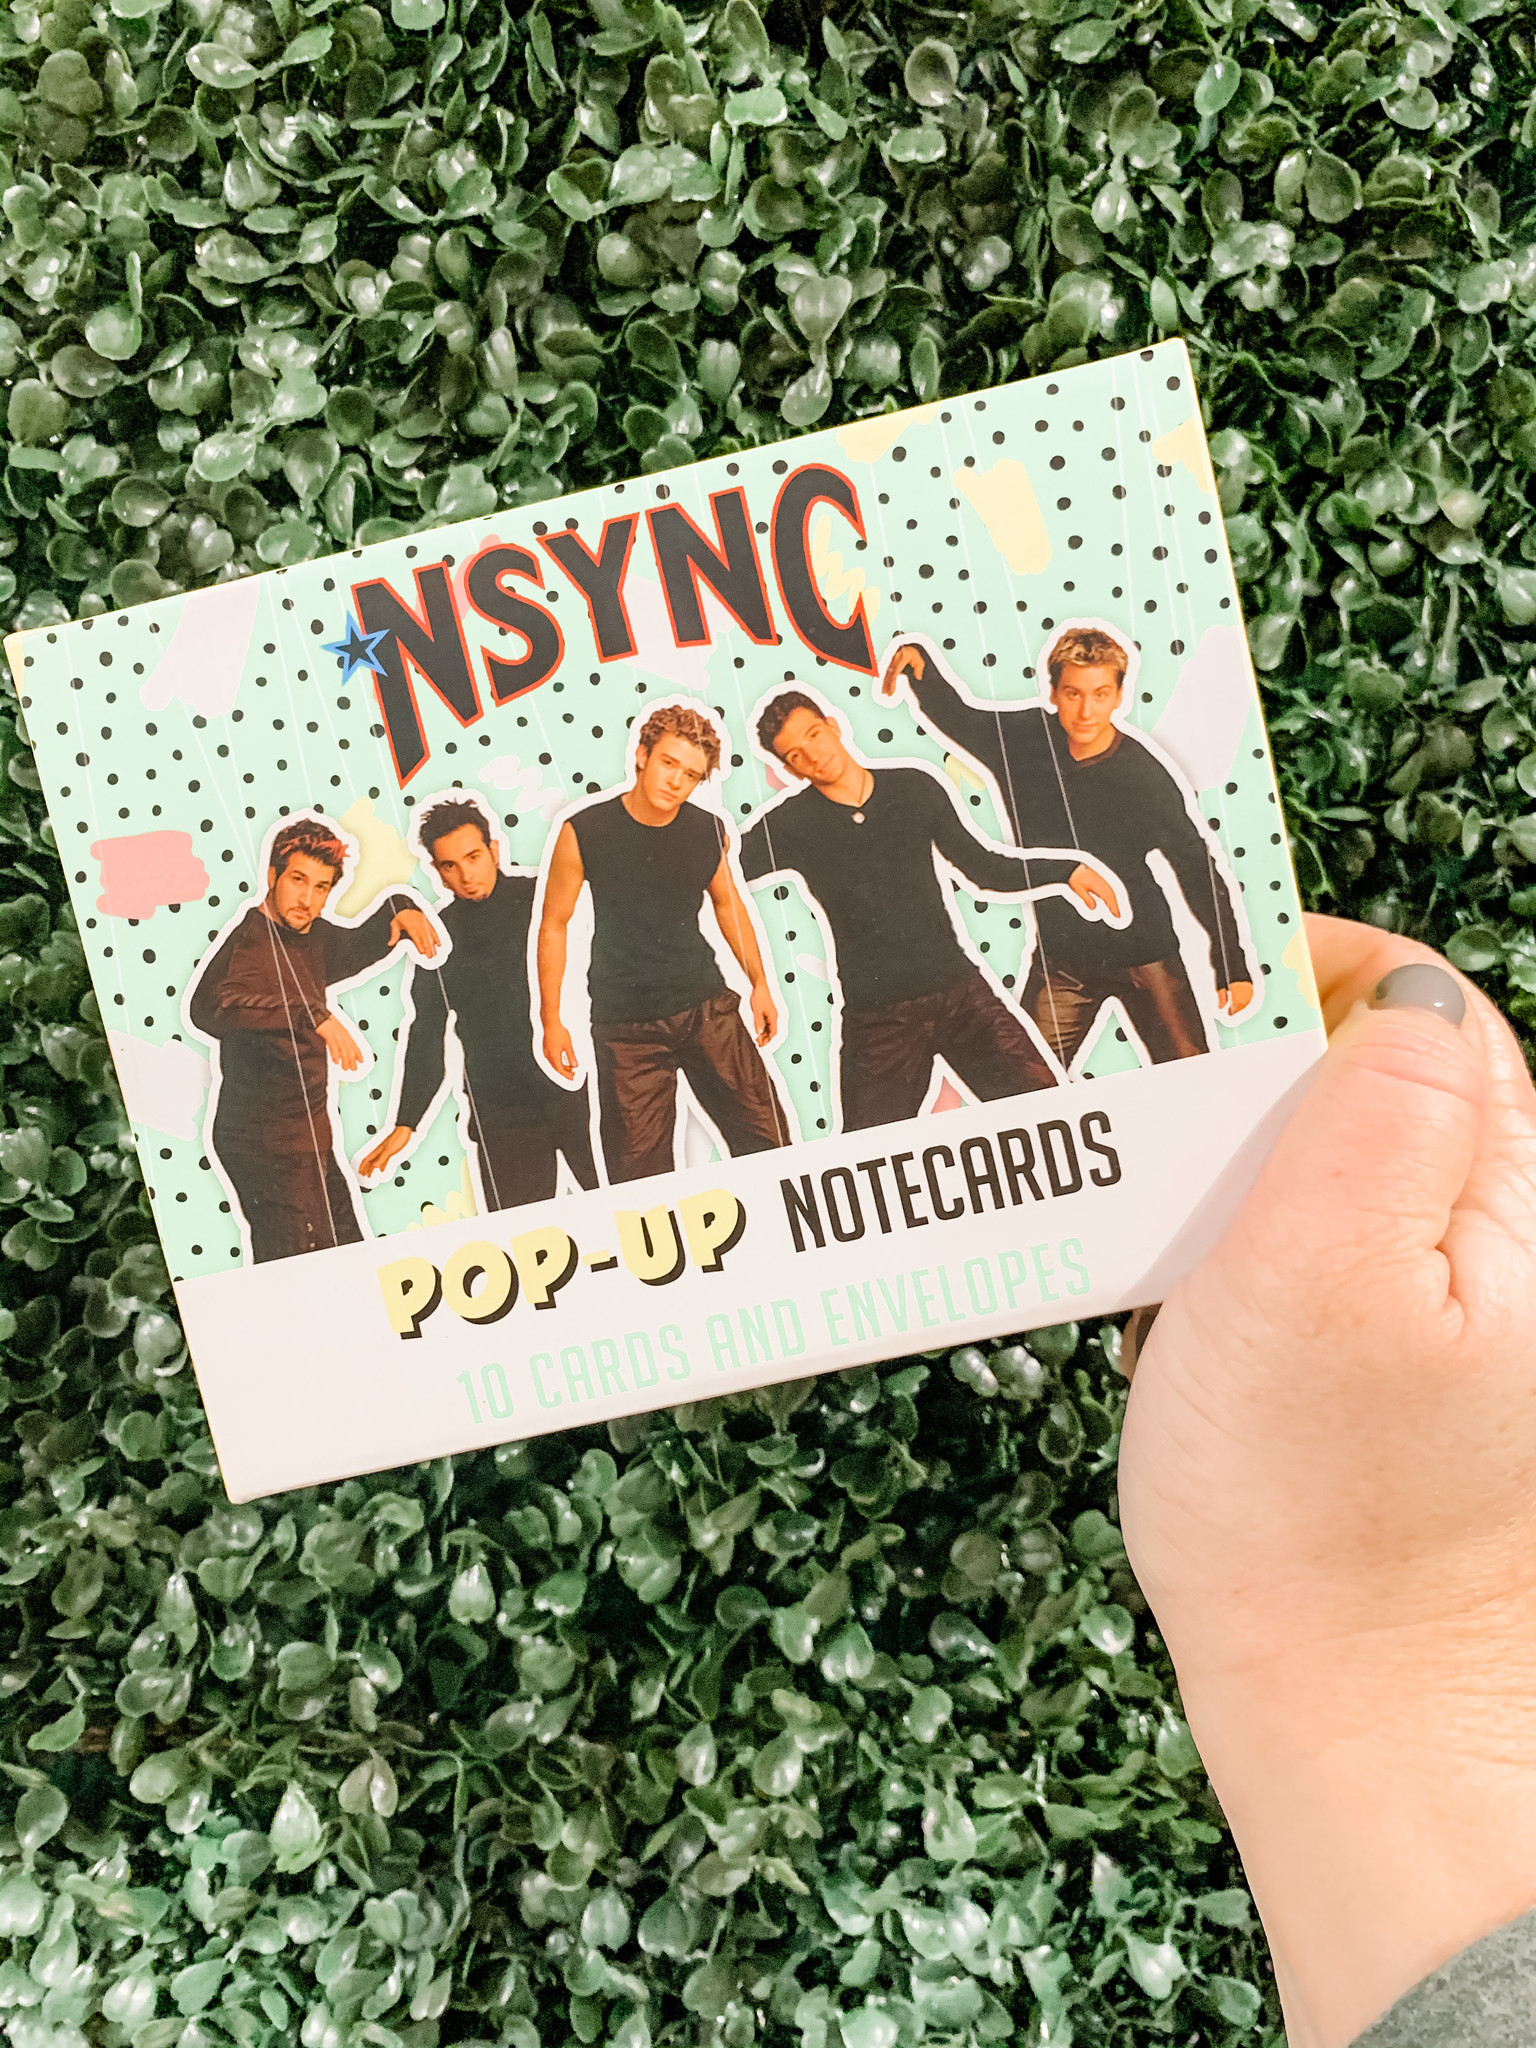 Hachette N*Sync pop up notecards